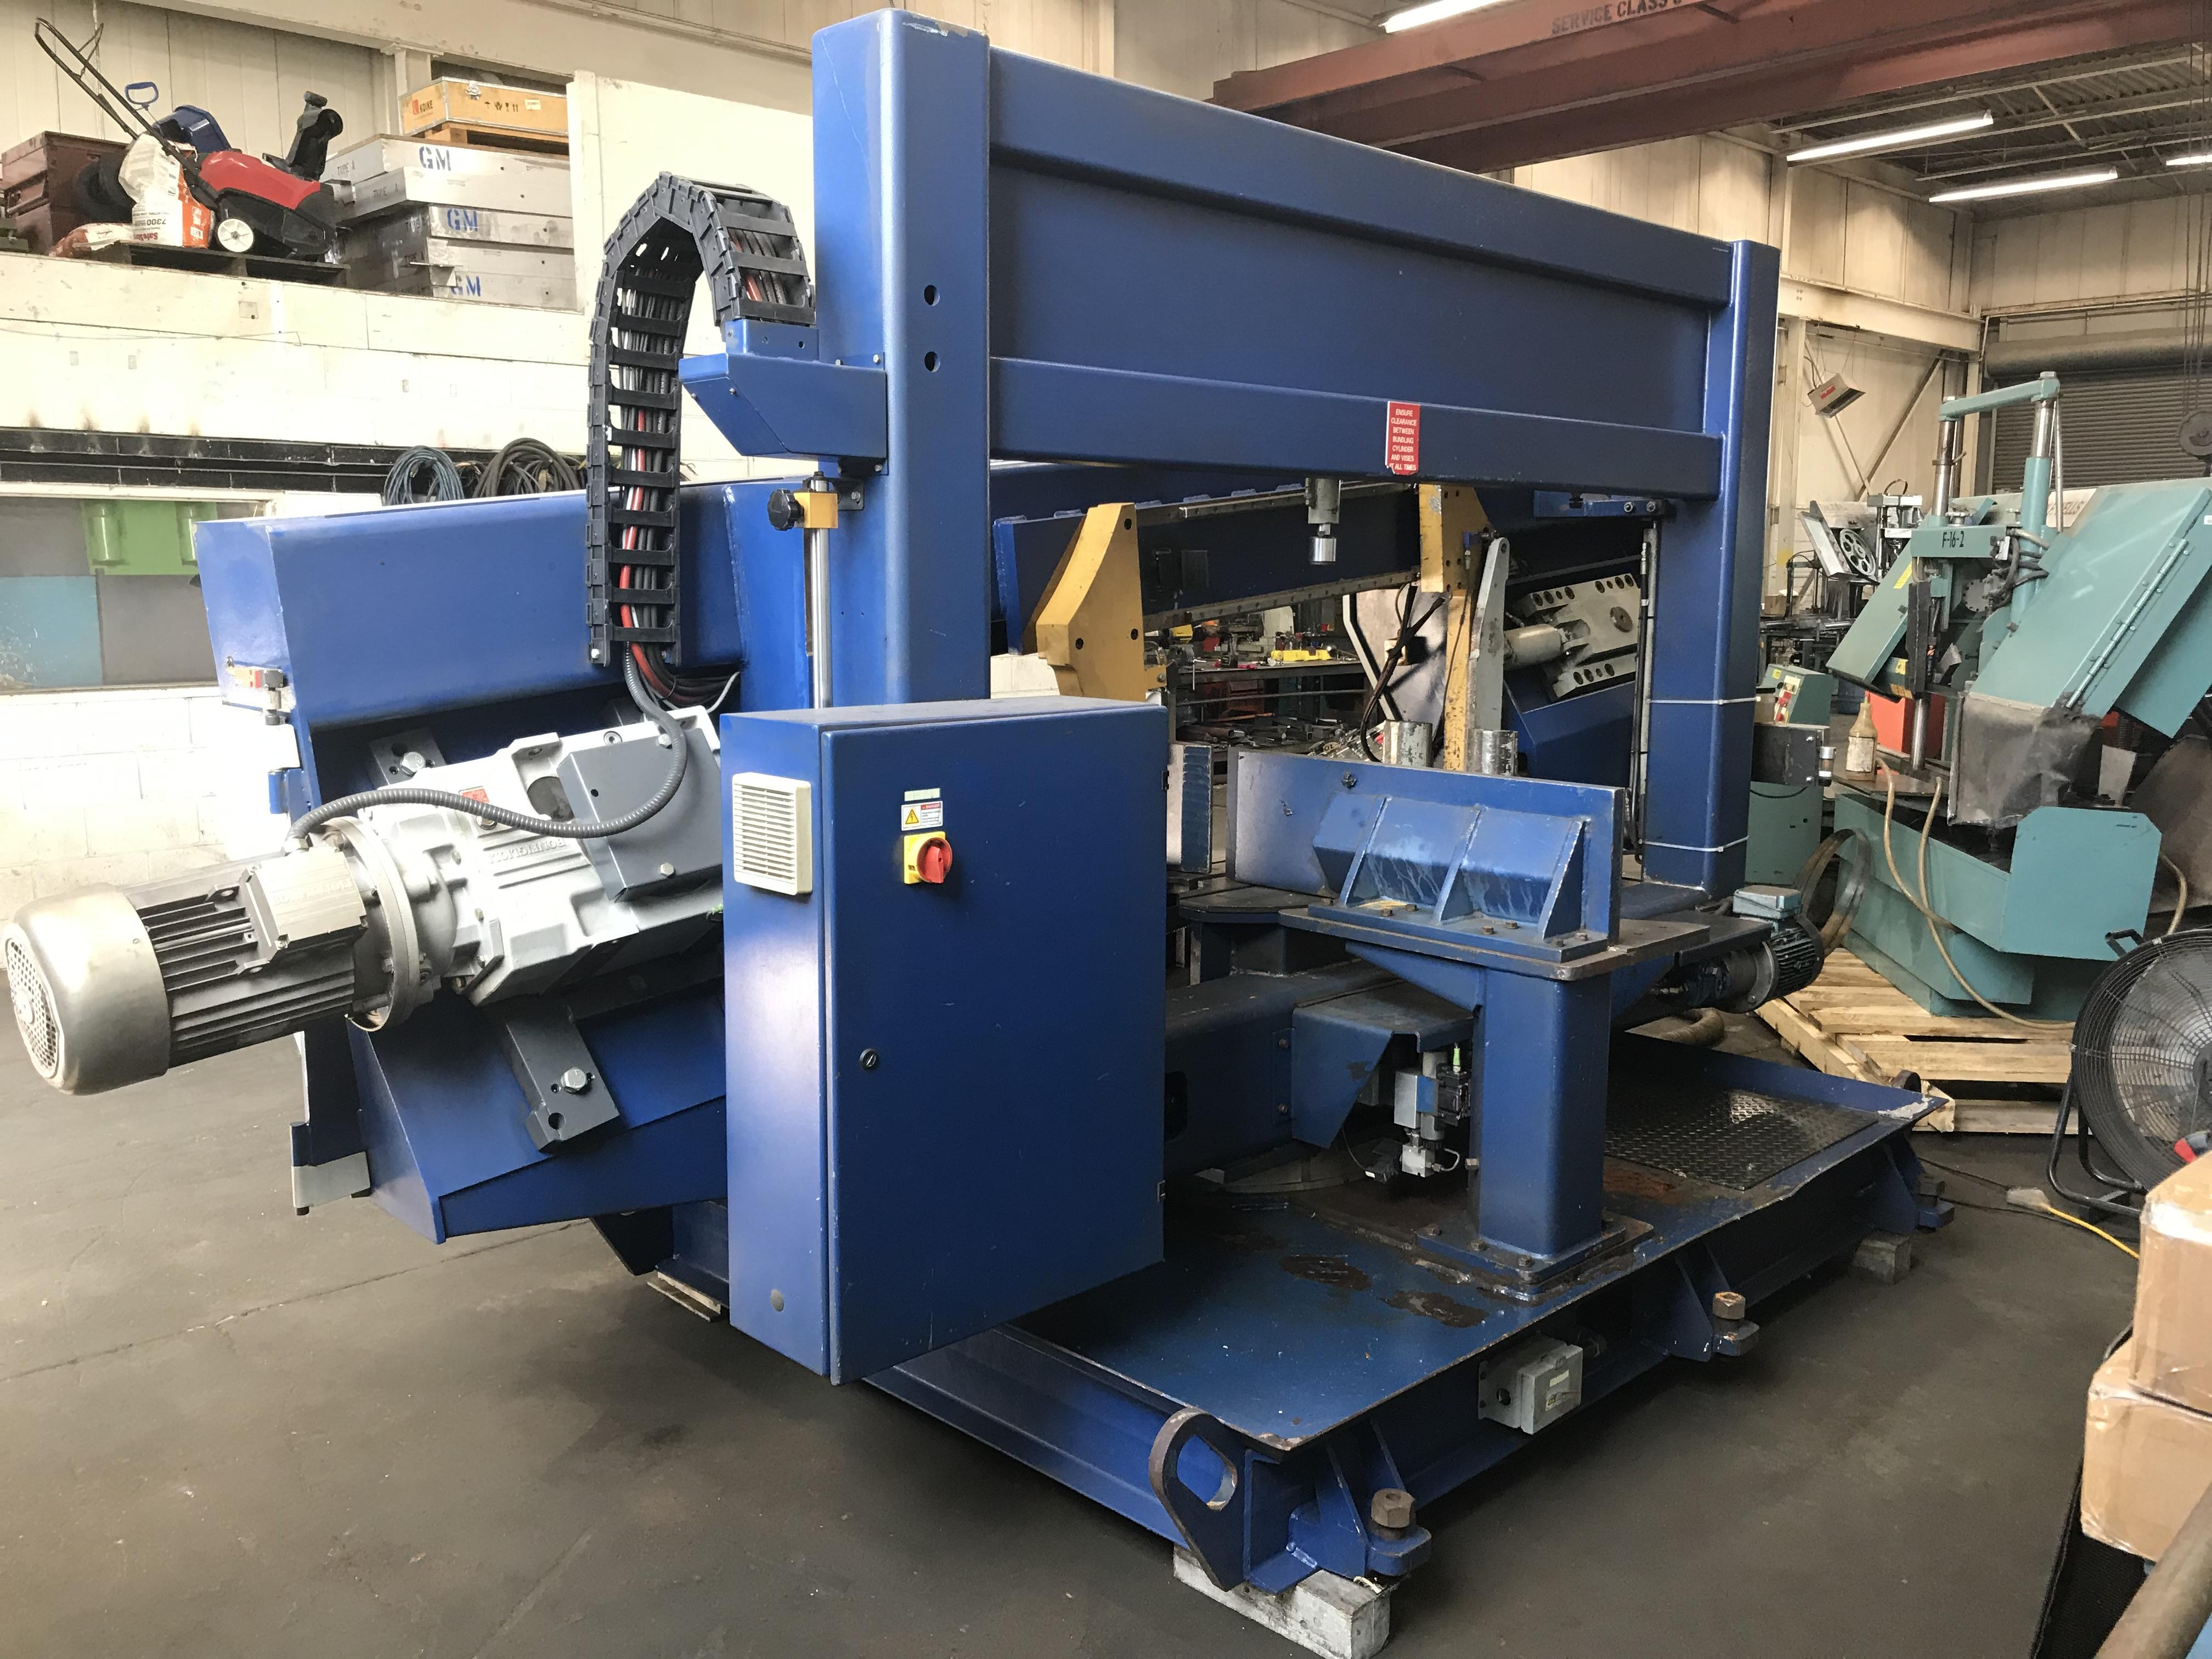 "USED OCEAN / HYD-MECH DCM 20/30 HORIZONTAL DUAL MITERING BANDSAW, 20"" x 30"", 2005, Stock No. 10561"